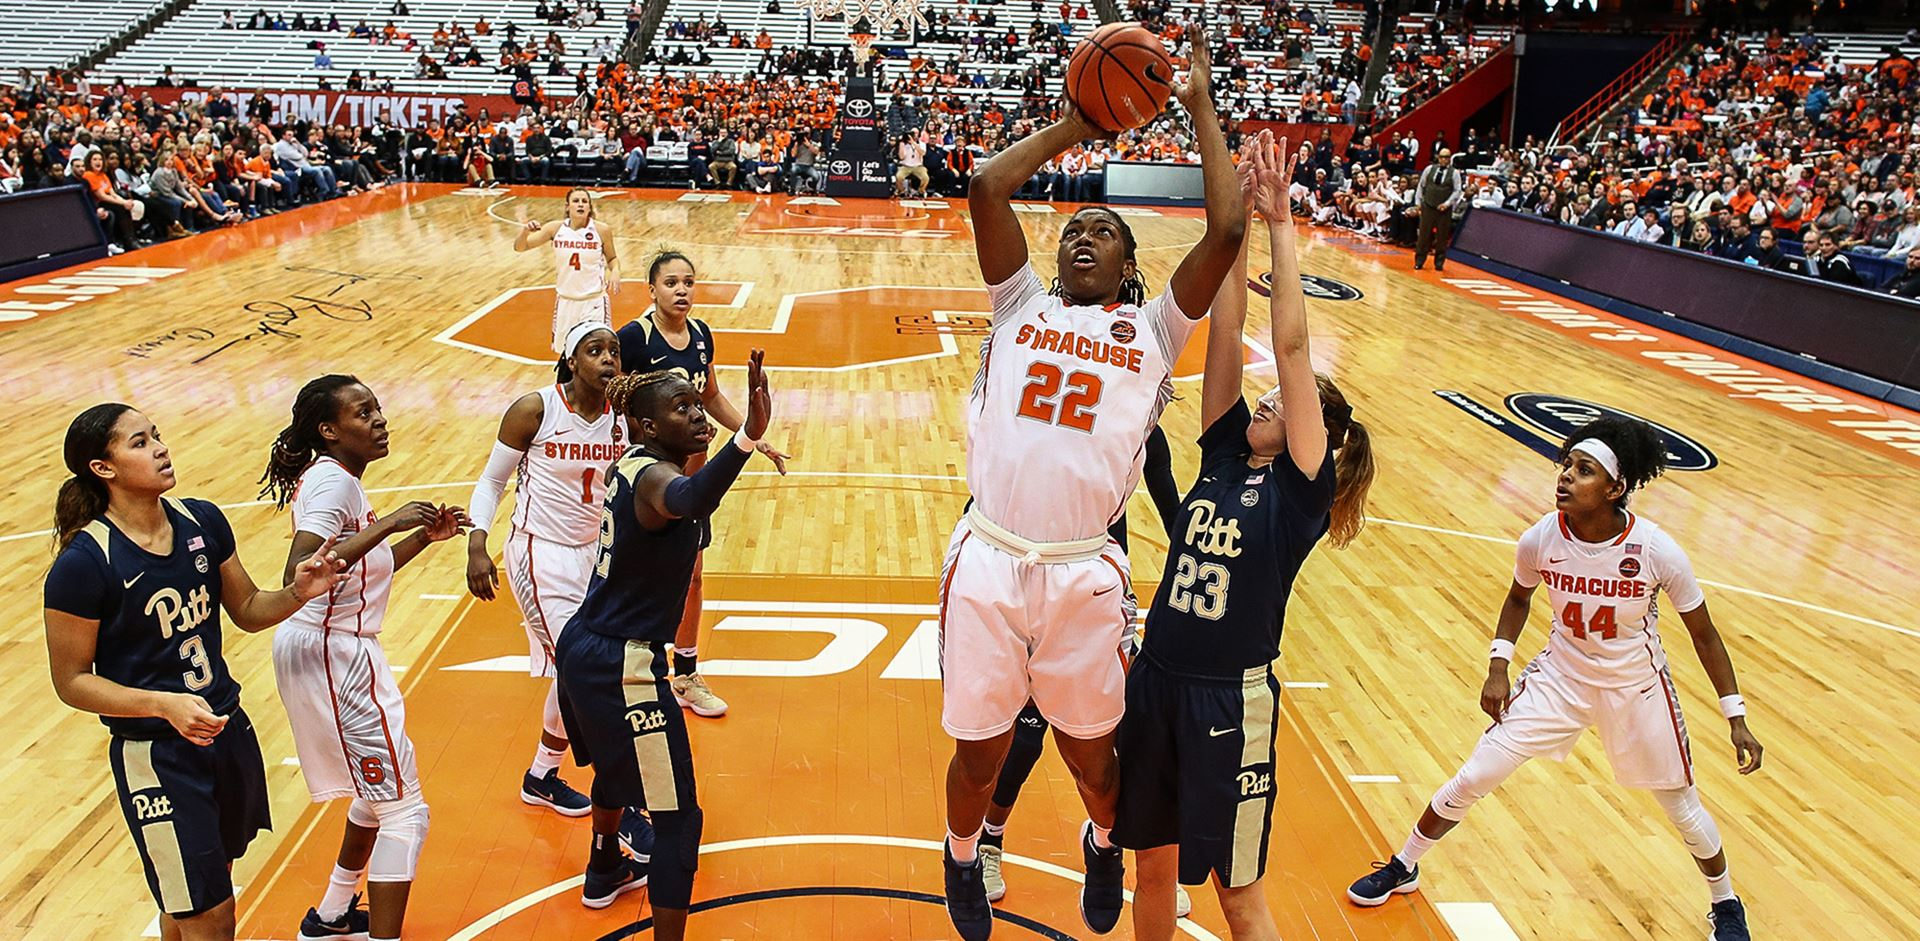 Syracuse tops Virginia Tech in nailbiter, 67-65